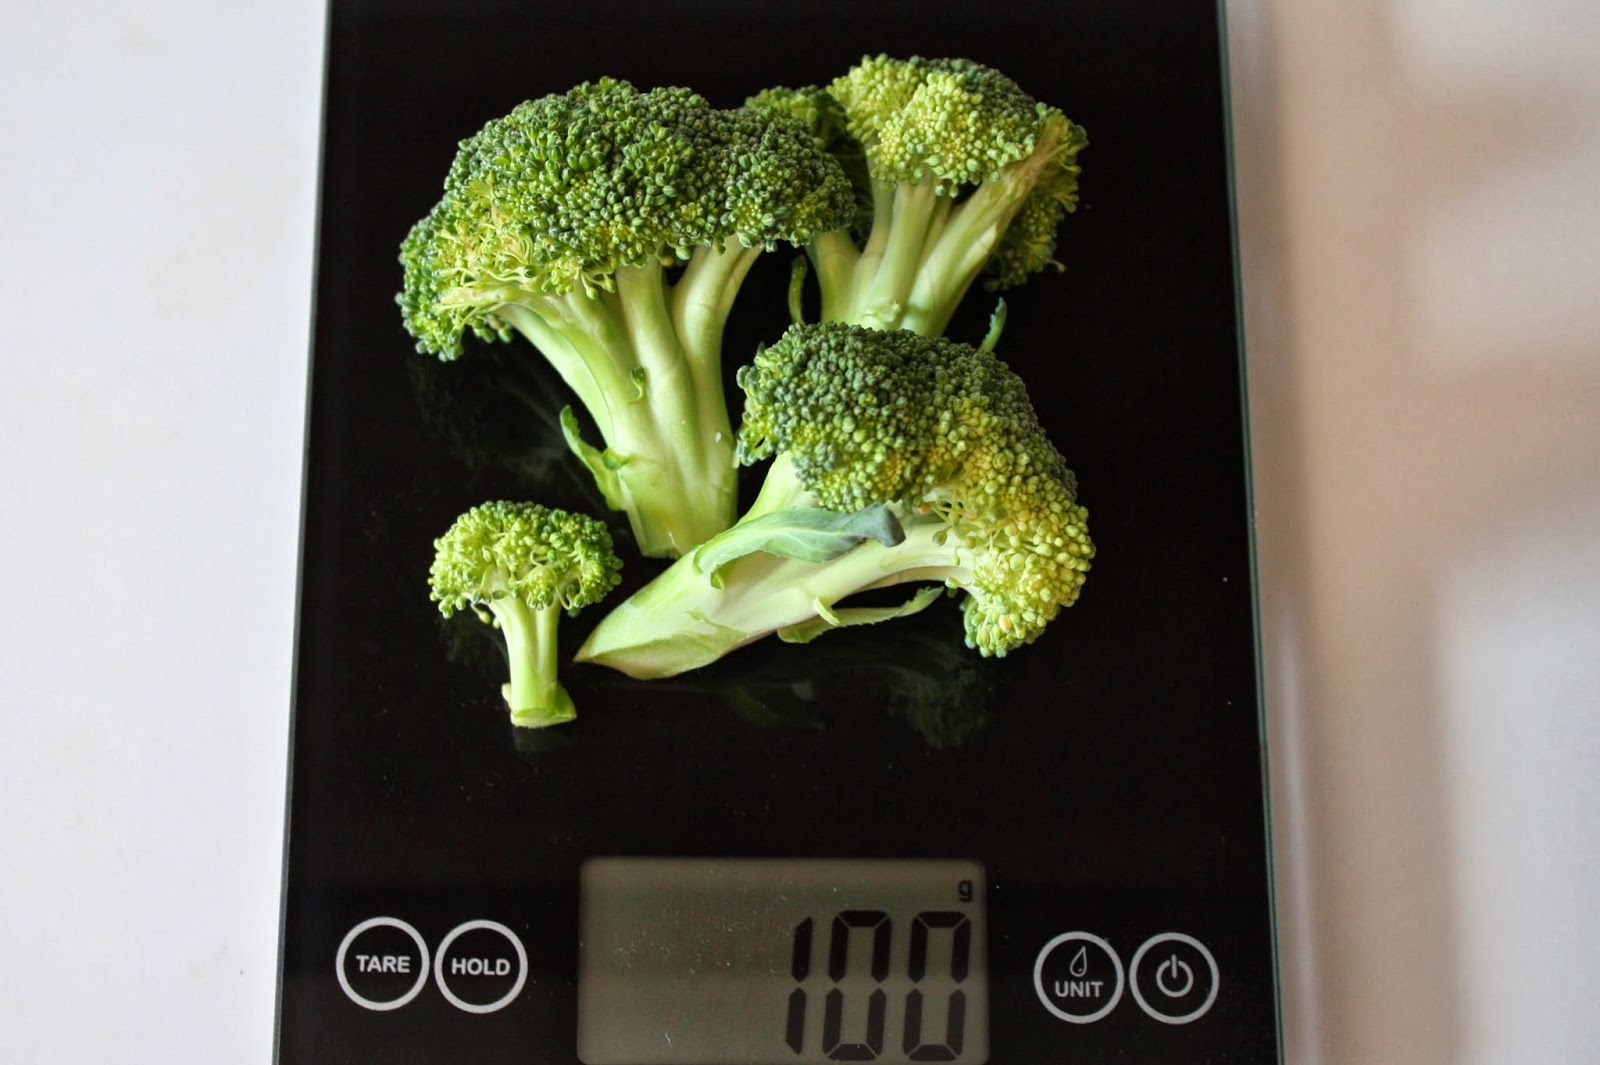 100g Of Brocolli